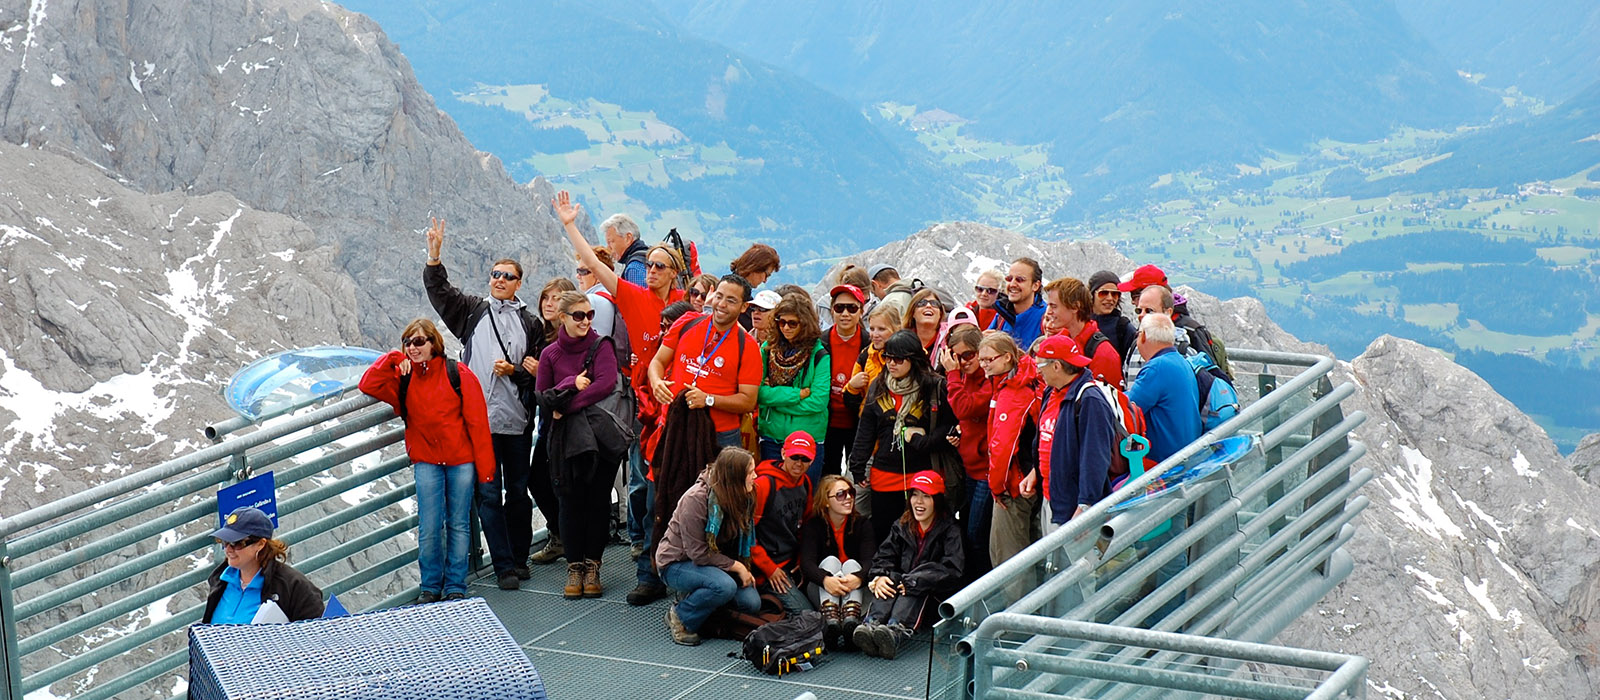 Lions Youth Camp and Exchange Program - MD 114 Austria